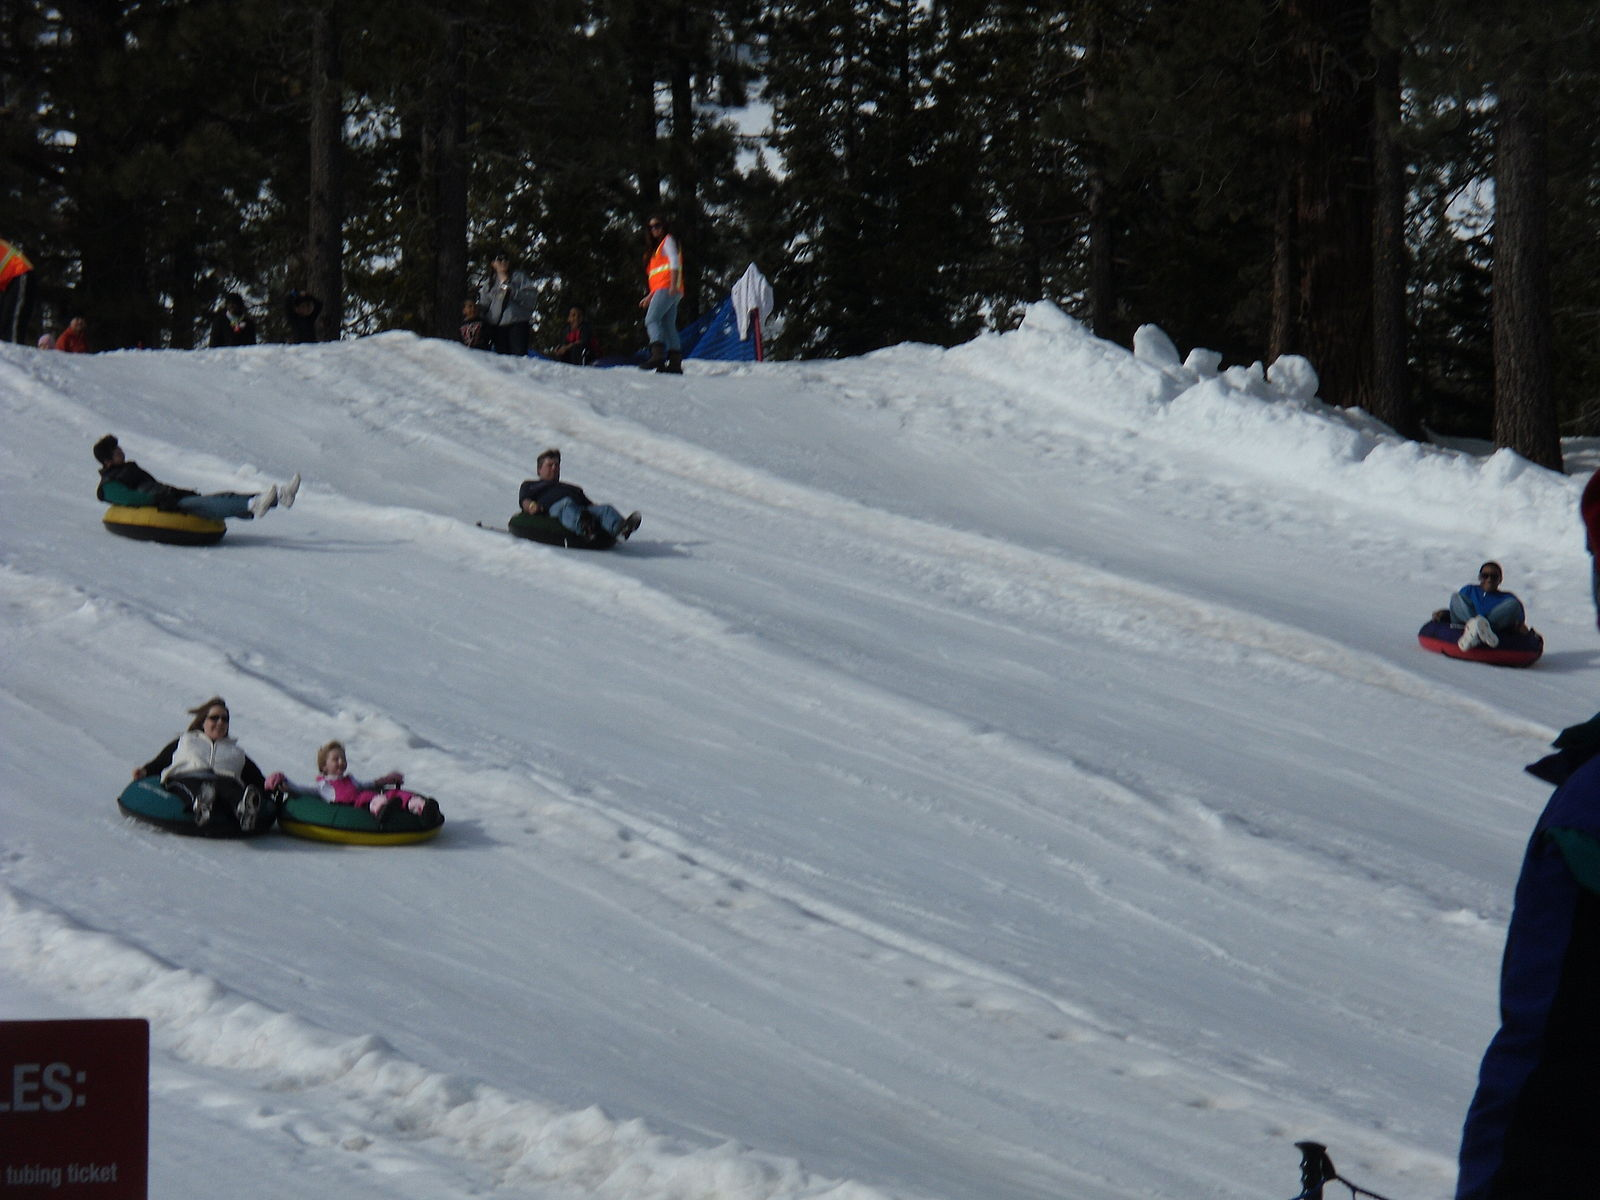 https://fasterskier.com/wp-content/blogs.dir/1/files/2014/04/Snow_tubing_3.jpg